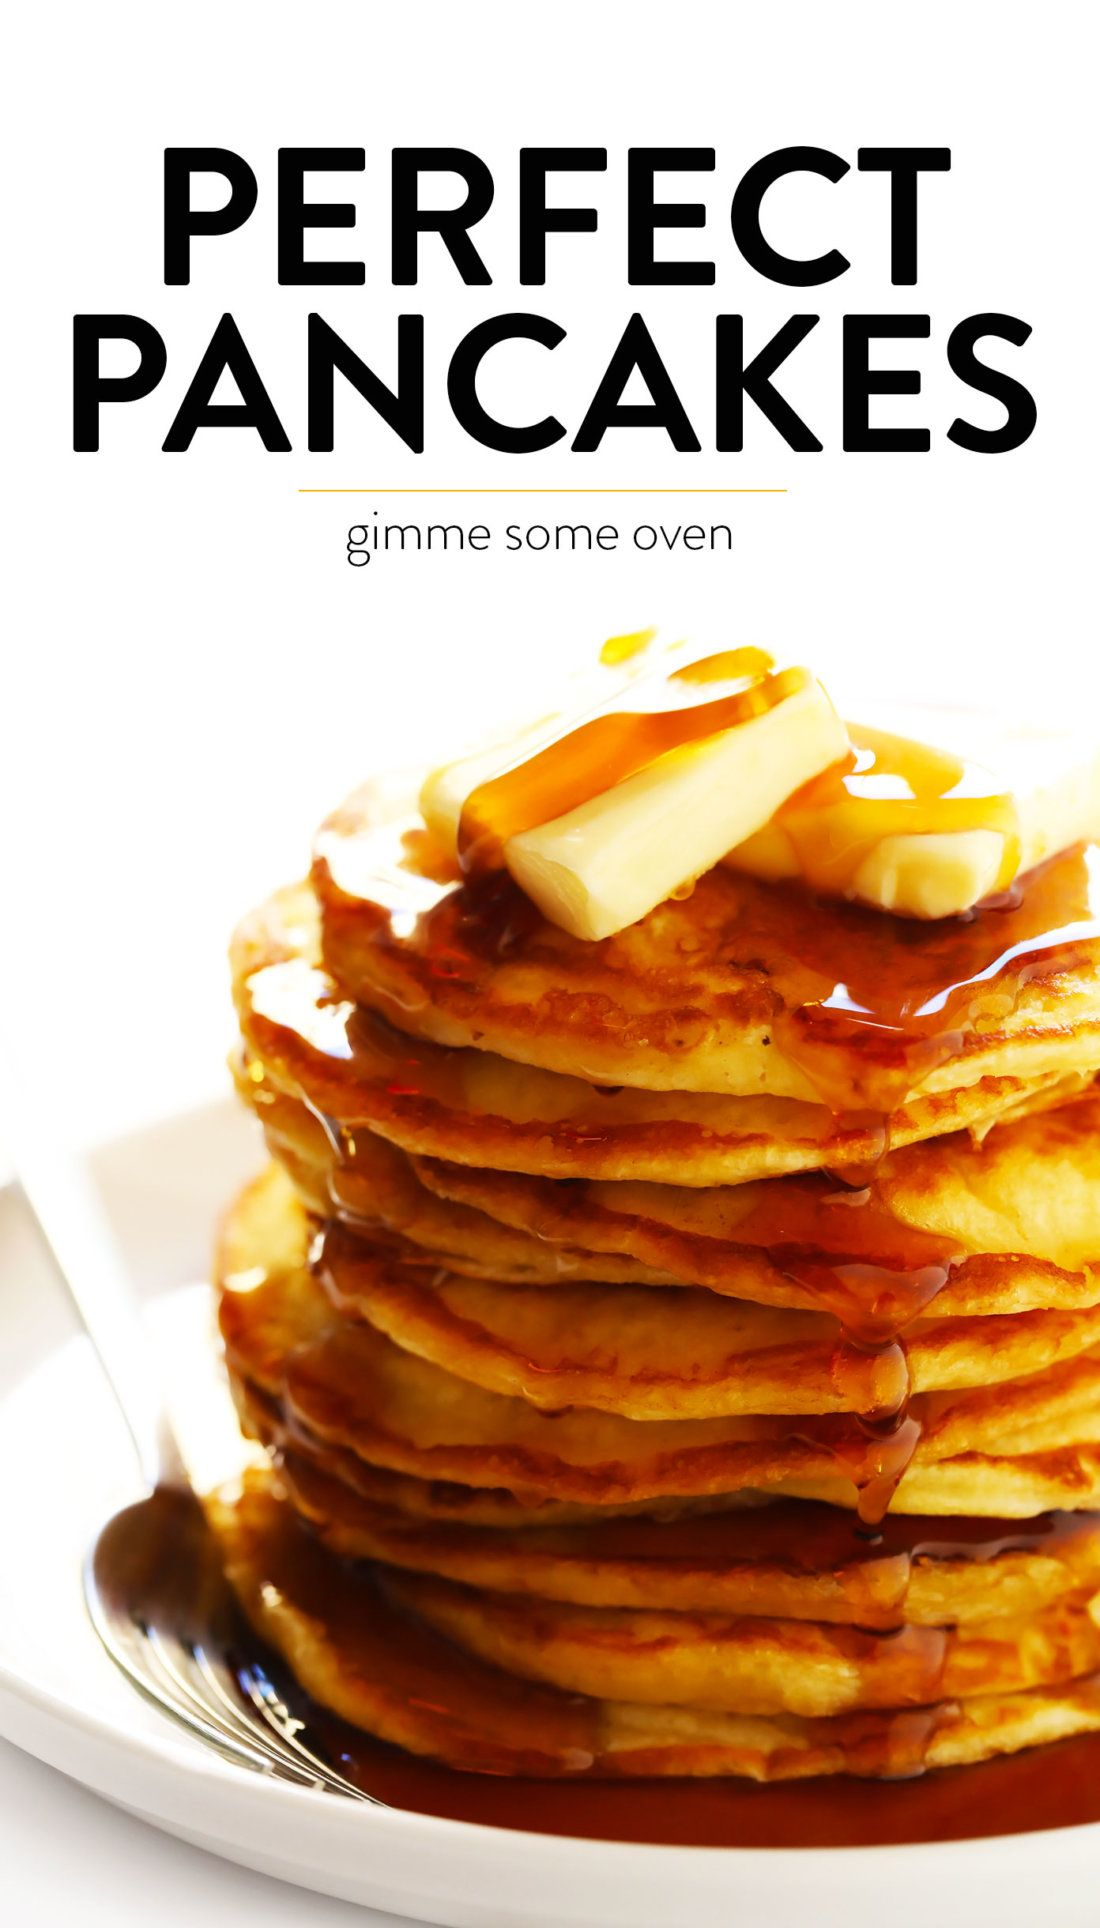 The Best Buttermilk Pancakes Recipe Easy To Make Full Of Those Comforting The Best Buttermilk Pancake Recipe Buttermilk Pancakes Pancake Recipe Buttermilk